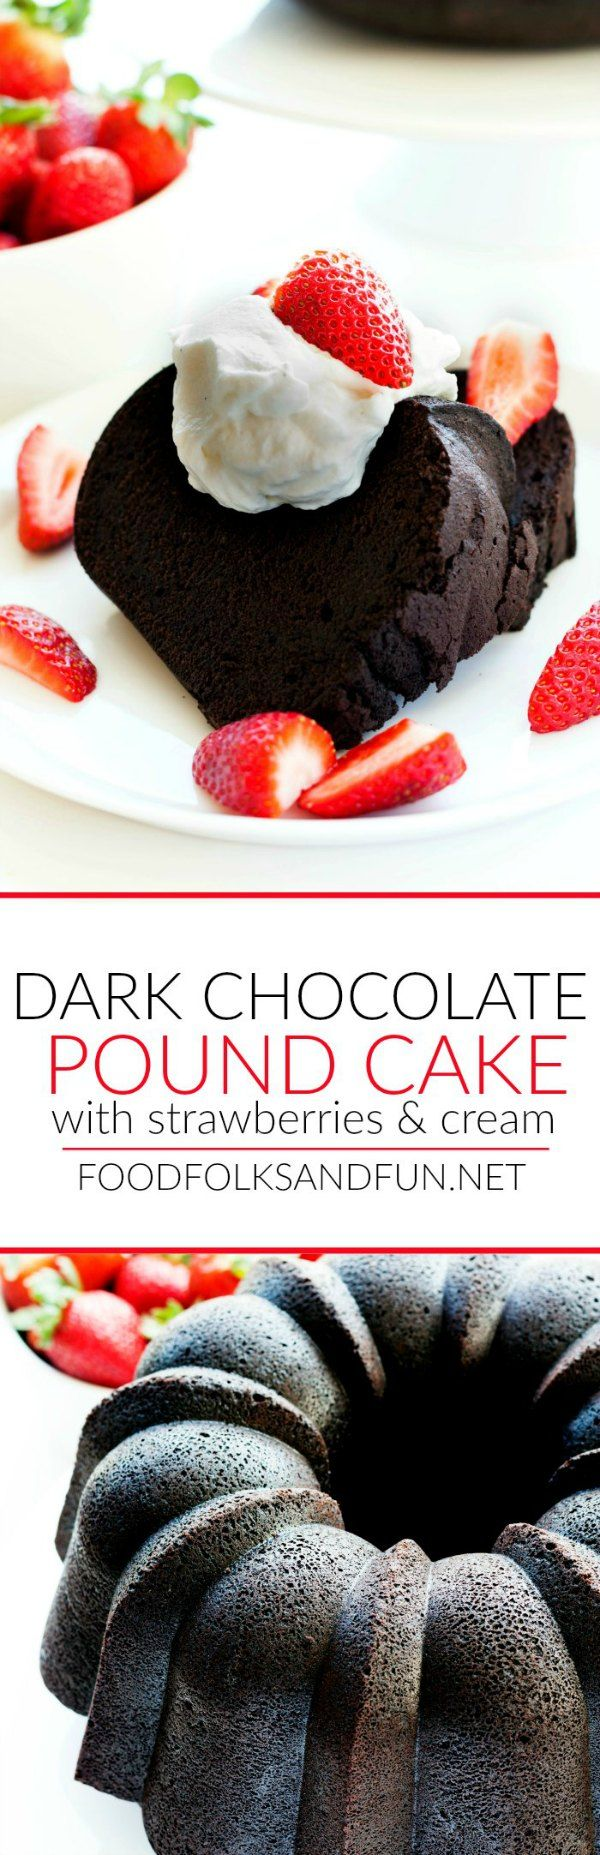 This recipe for Dark Chocolate Pound Cake with Strawberries and Cream uses tree popular Valentine's Day ingredients: chocolate, strawberries, and cream! #ad #savetimetips @pamcookingspray